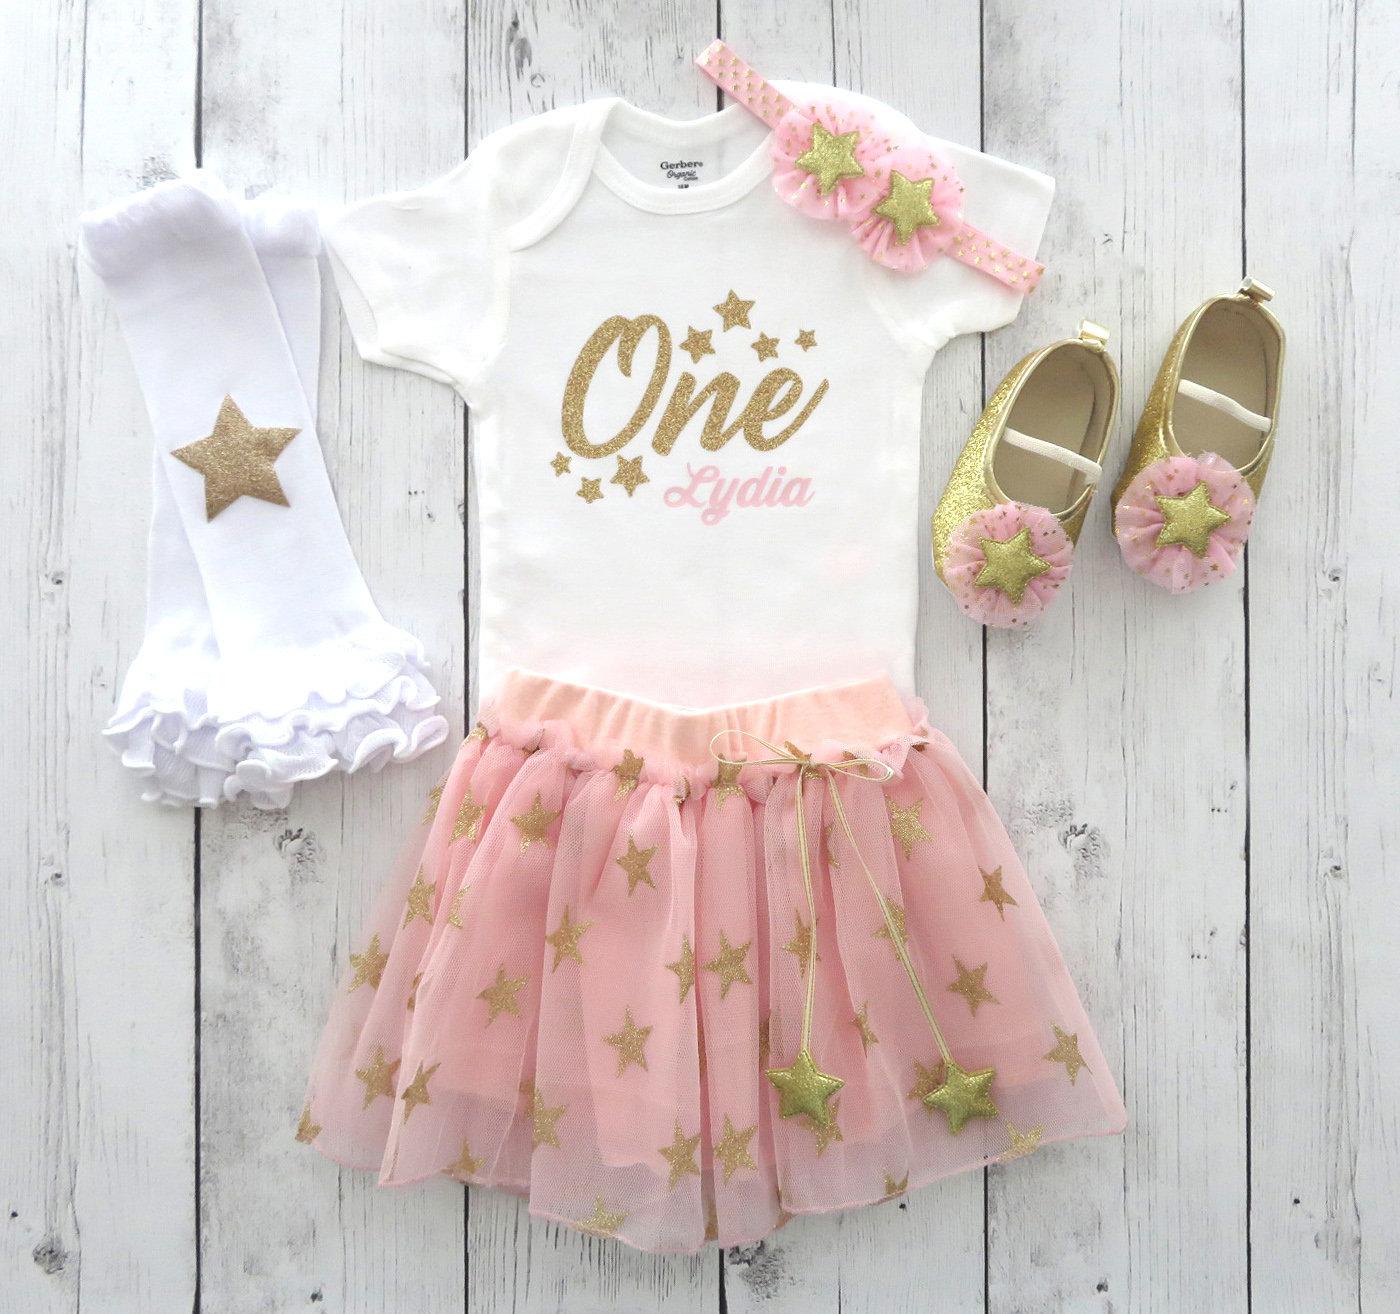 Twinkle Twinkle Little Star First Birthday Outfit with Pink and Gold tutu and Star Shoes - 1st bday outfit girl, pink gold birthday outfit